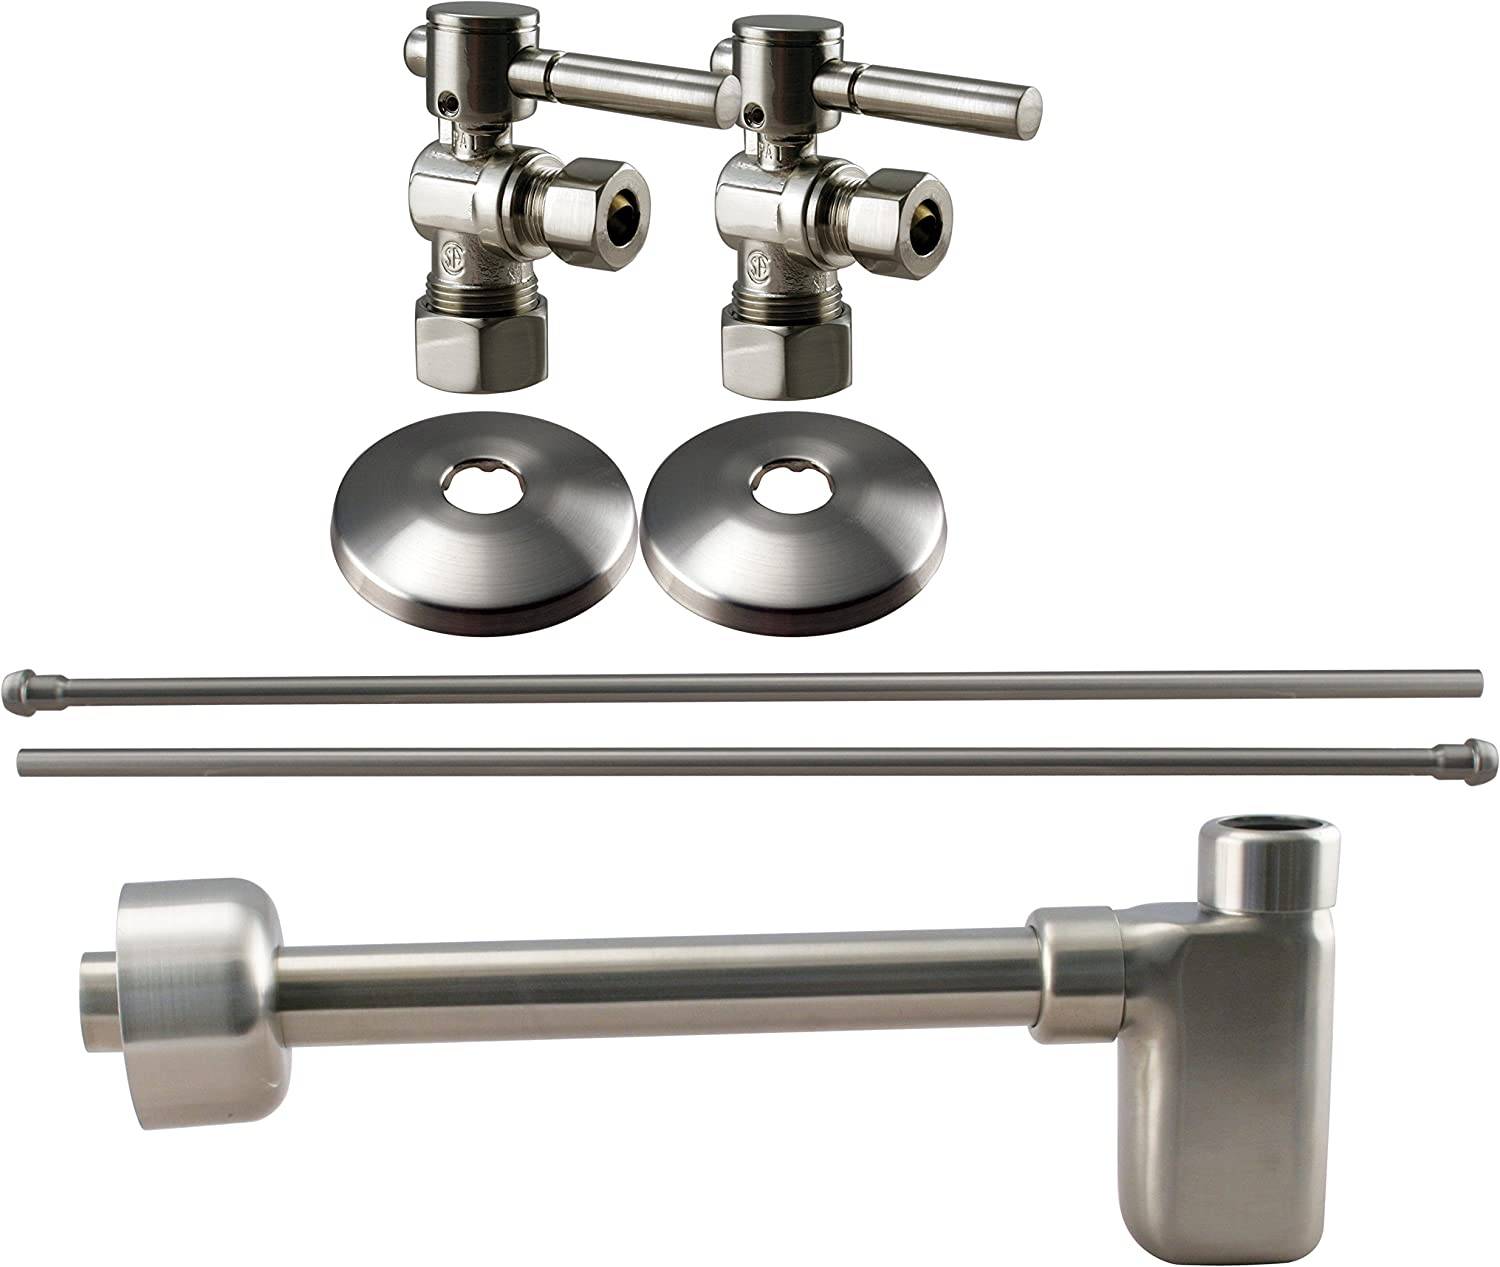 Westbrass D19105BLK-07 1 2-Inch Nominal Compression Lever Handle Angle Stop Complete Pedestal Sink Inssizetion Kit in Satin Nickel